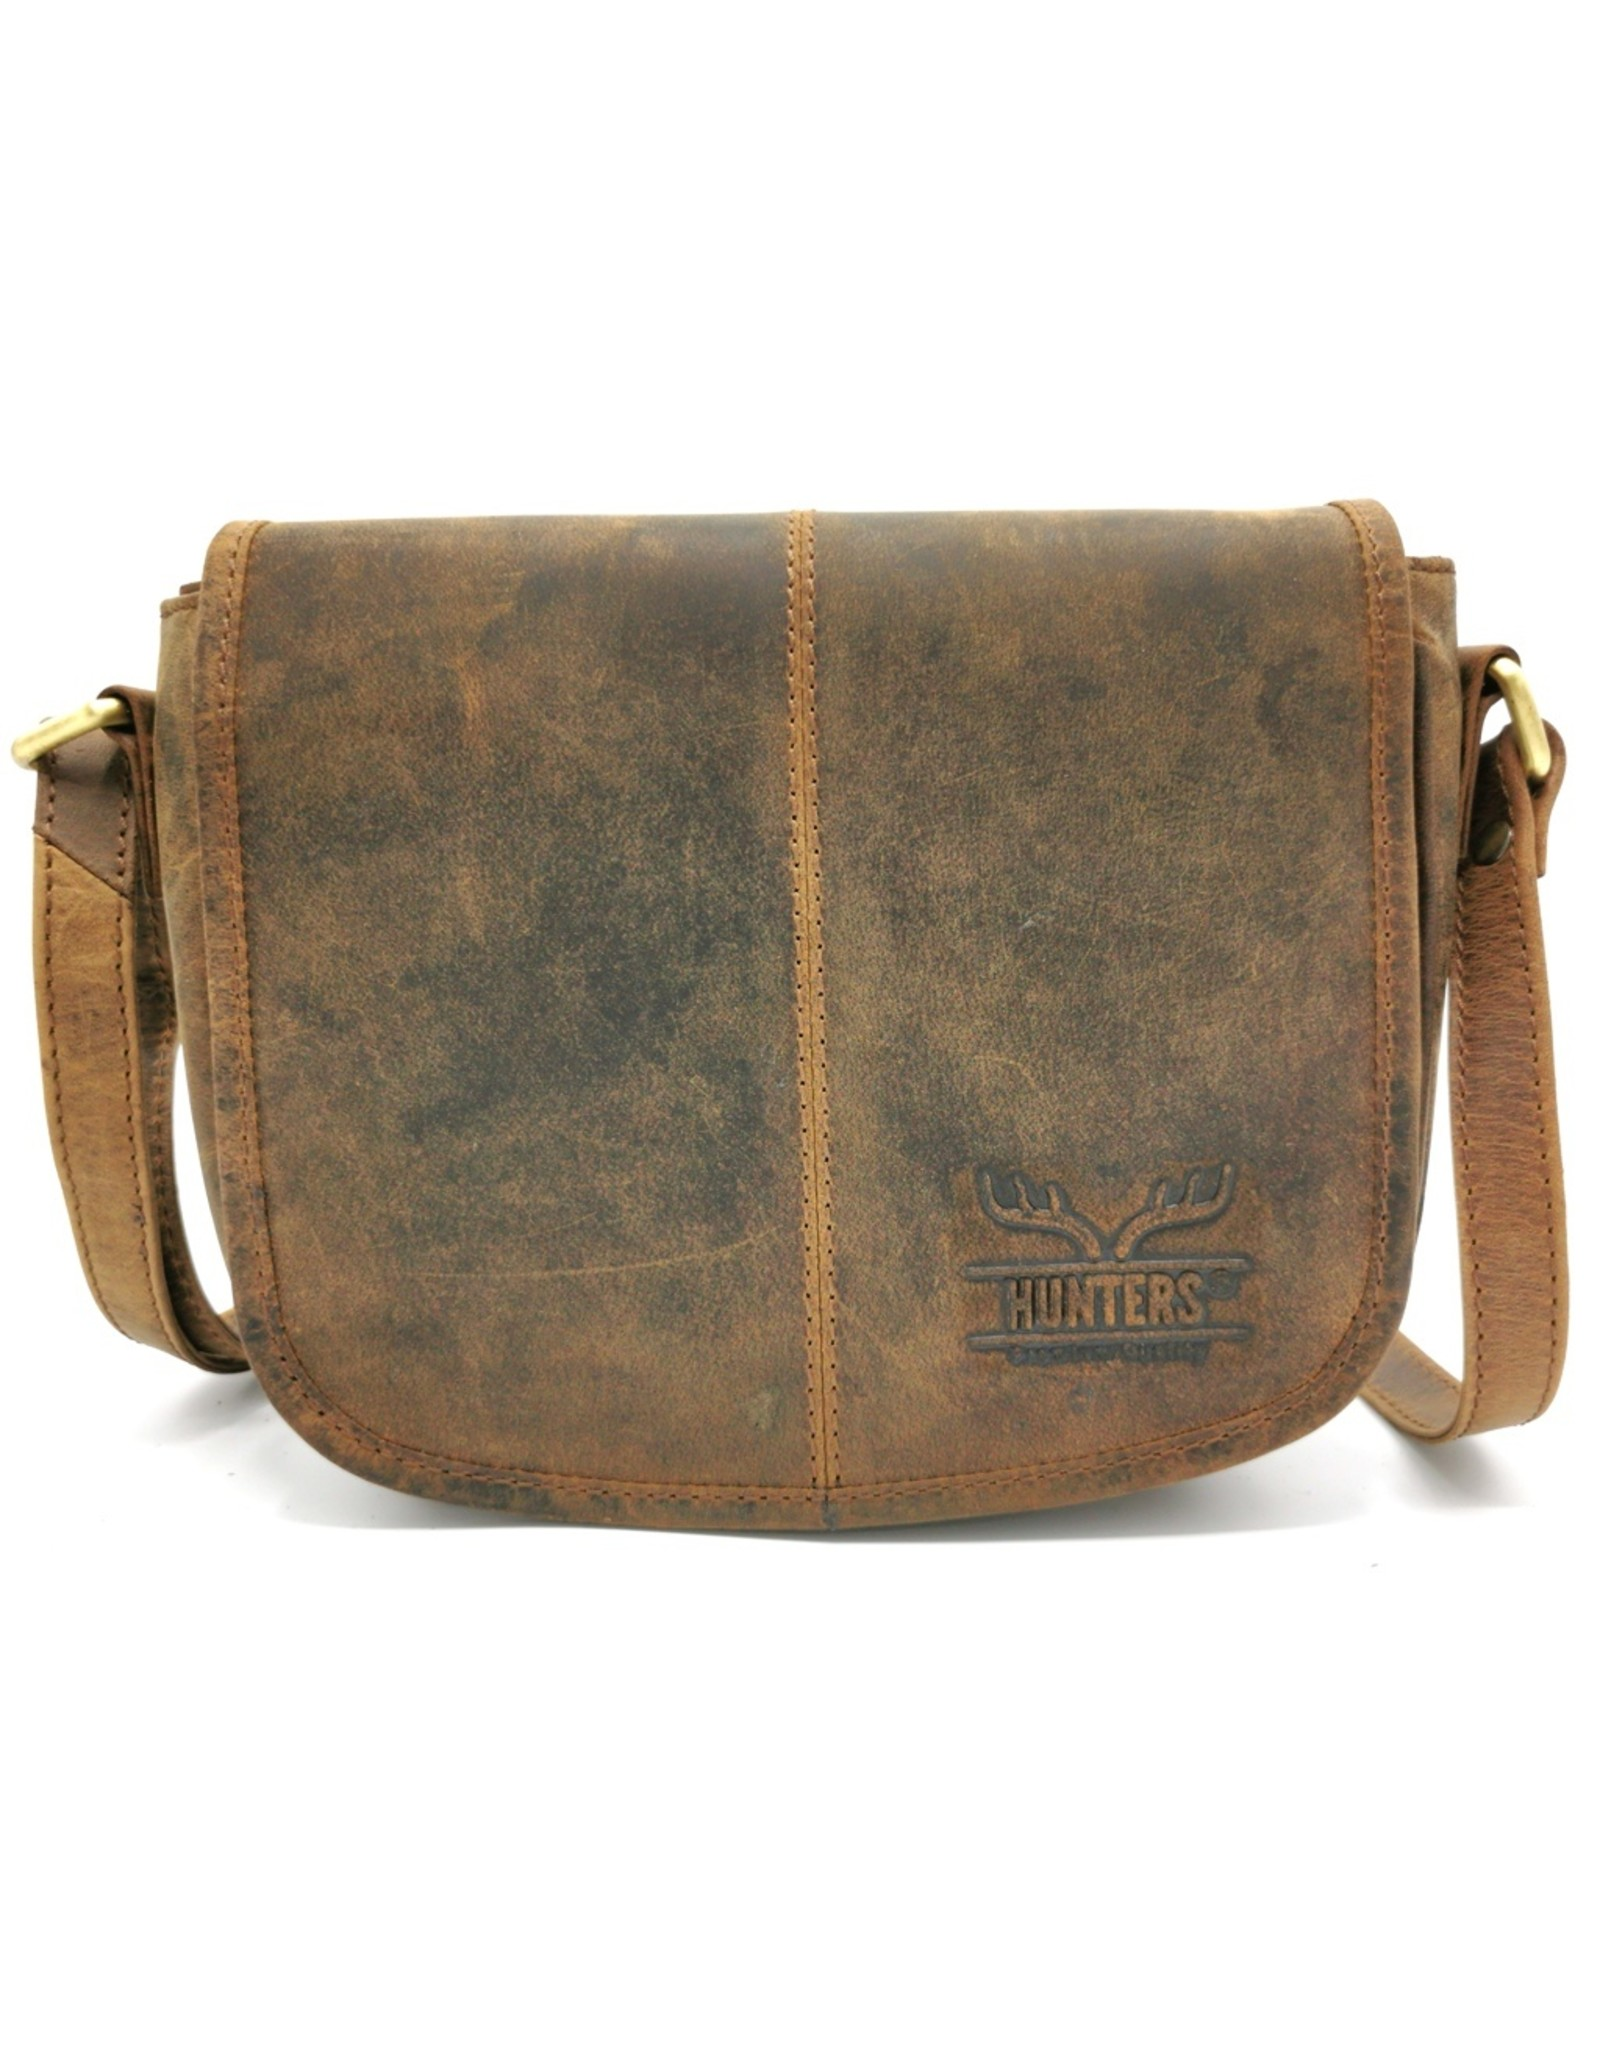 Hunters Leather Shoulder bags  leather crossbody bags - Hunters Leather Saddlebag Buffalo Leather